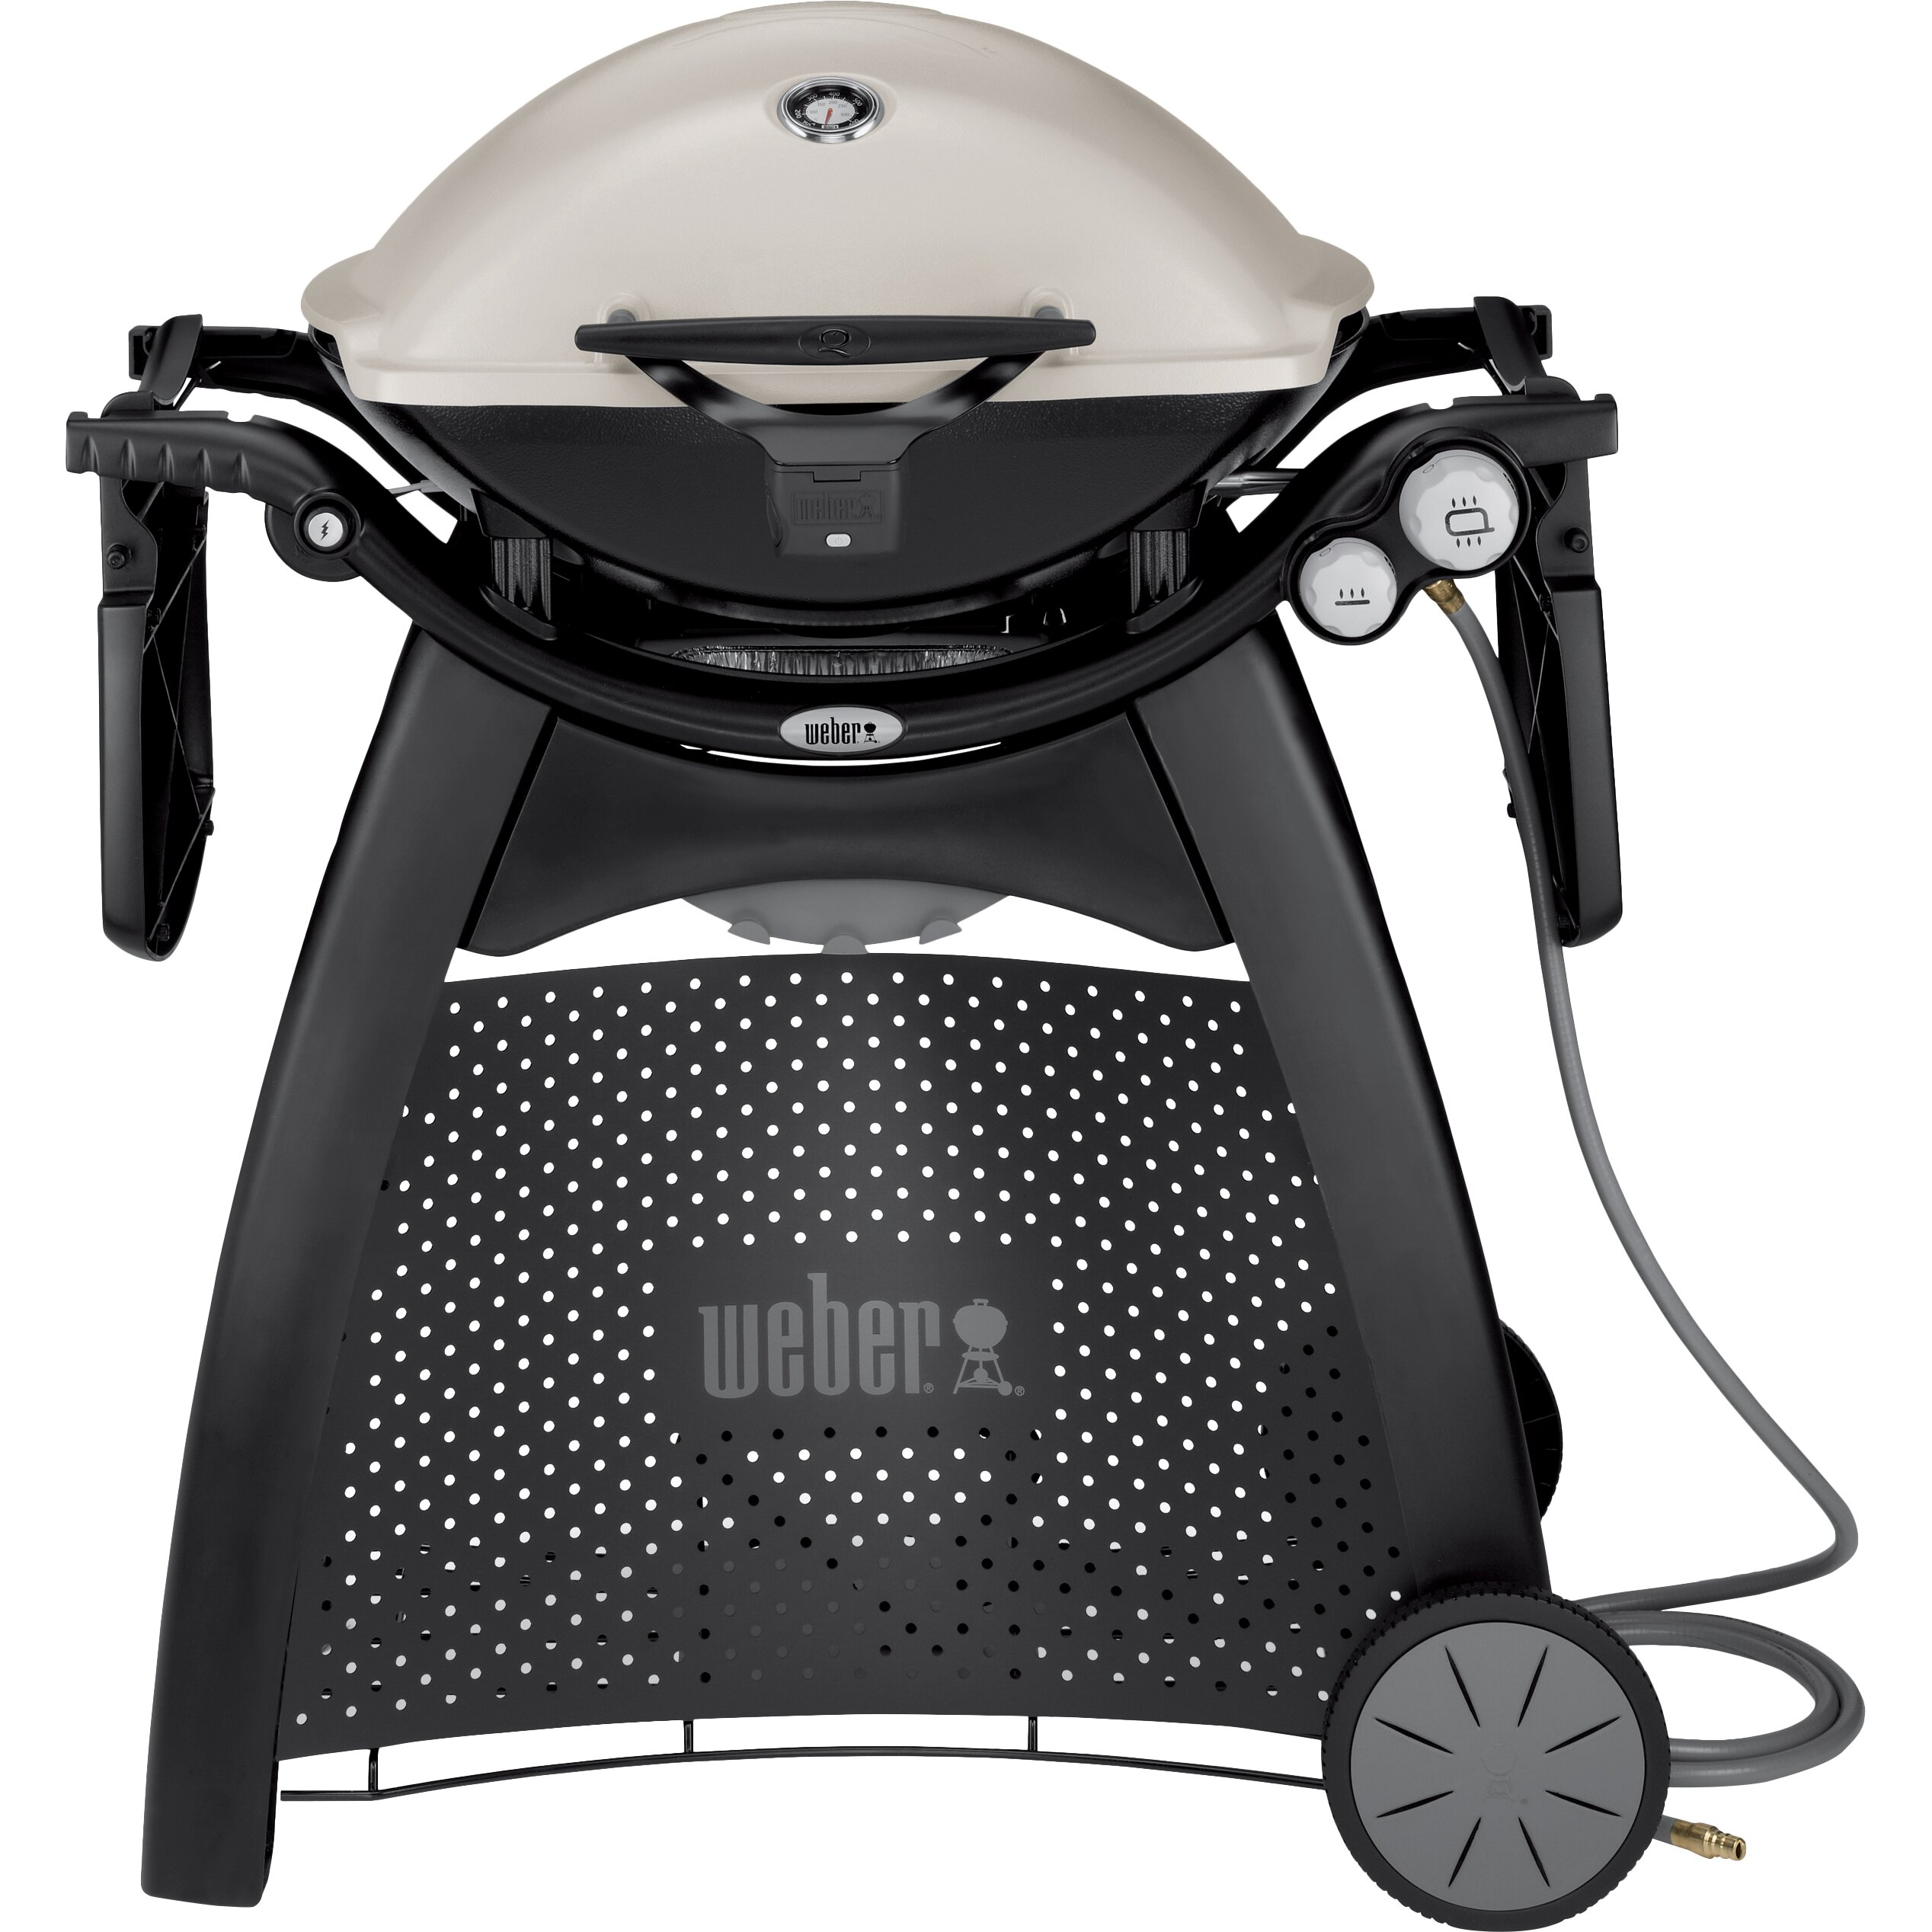 weber q series 3200 titanium propane grill reviews wayfair. Black Bedroom Furniture Sets. Home Design Ideas